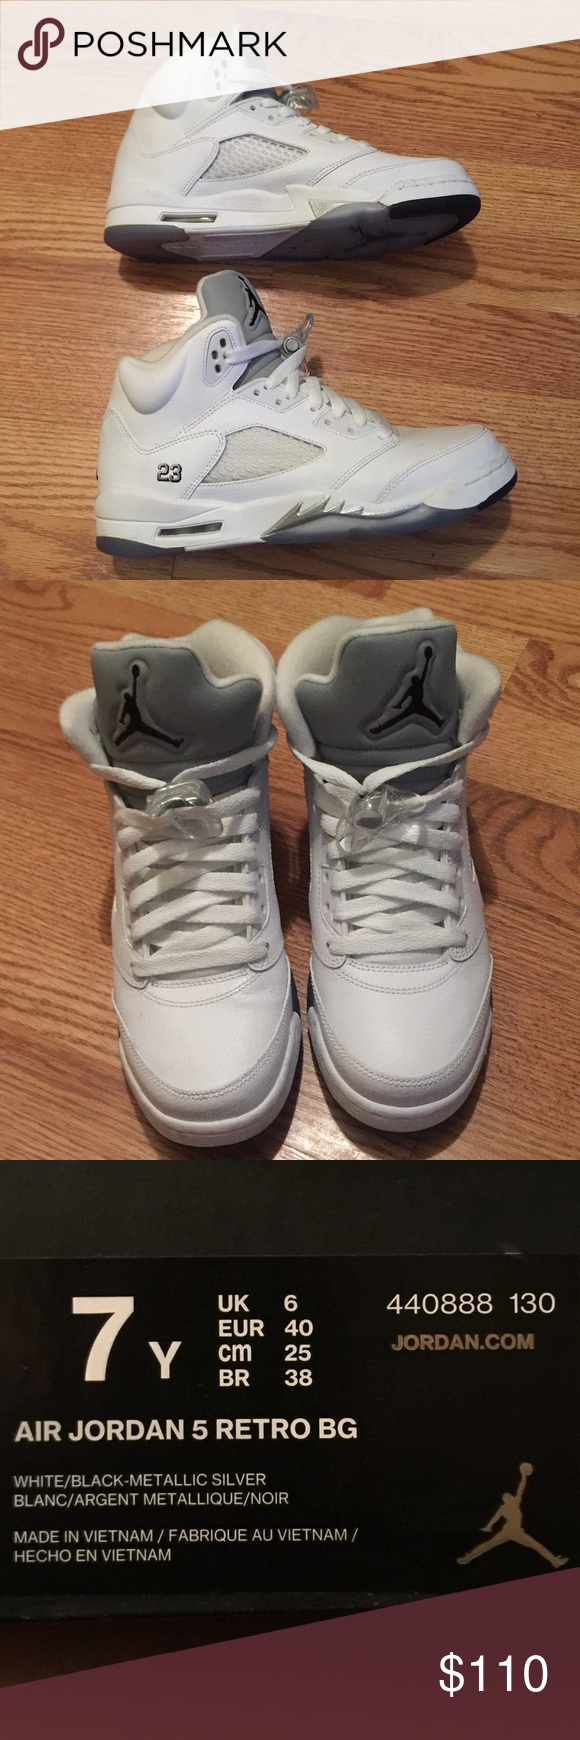 Air Jordan 5 Retro BG Mens jordans size 7Y. Fits a womens size 9.  my daughter wears a 9 and it fits her fine. Only wore twice Jordan Shoes Sneakers